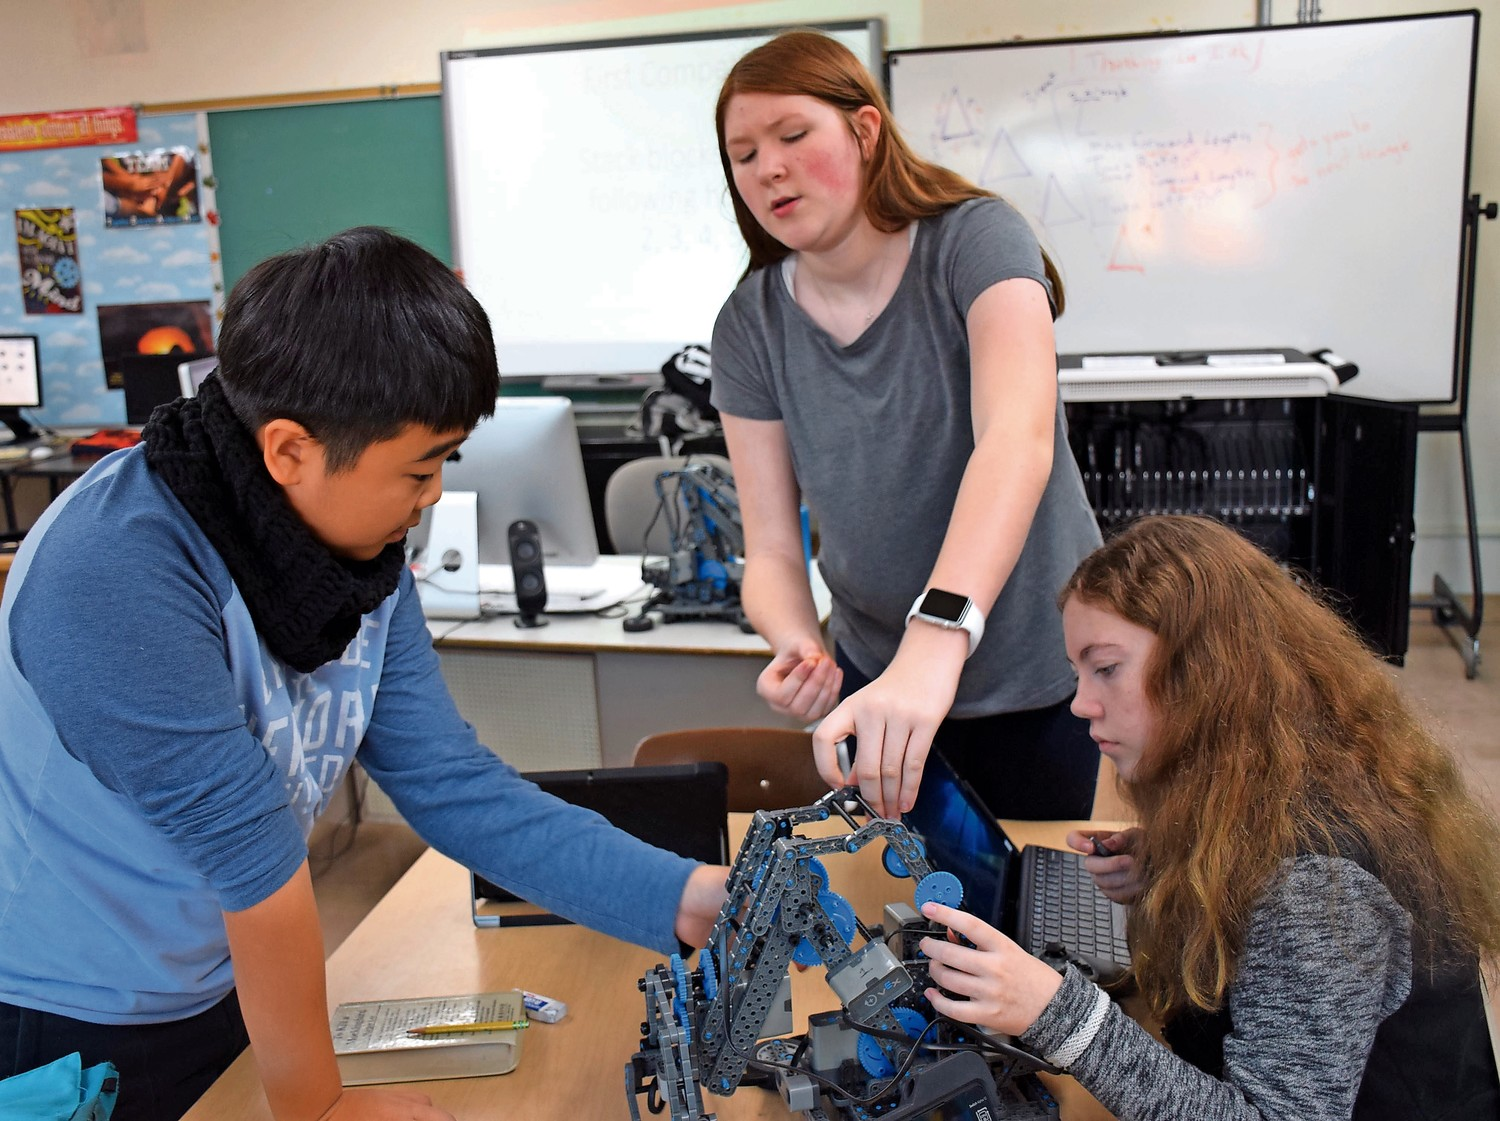 Hyosung Yang, Sabrina Joerg and Jessica Augustin, right, went to work building their latest robot.